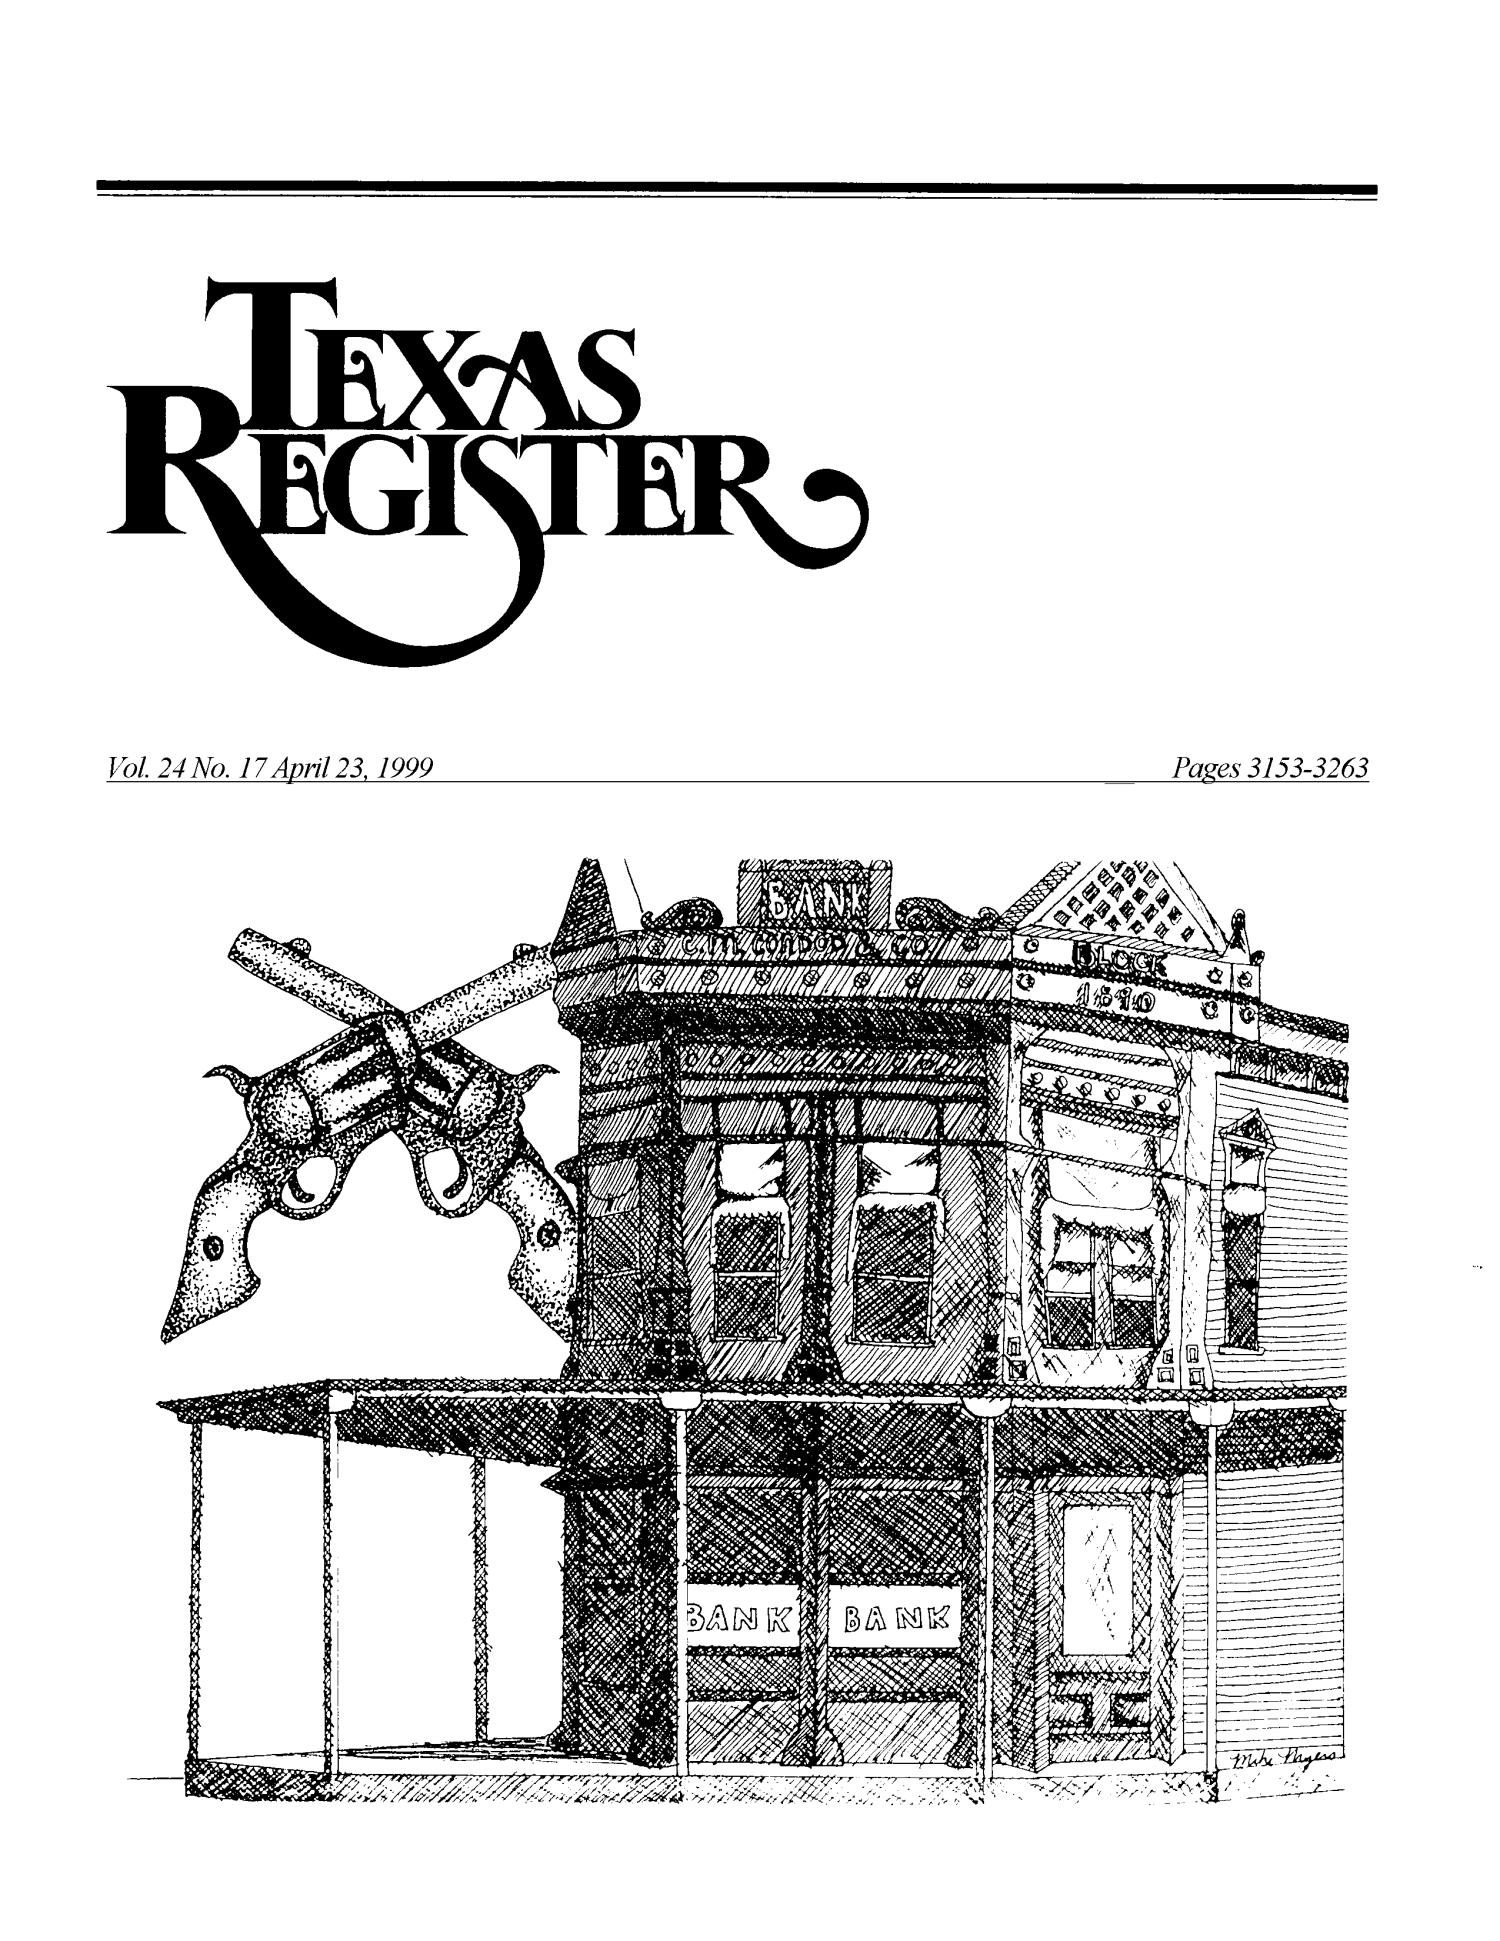 Texas Register, Volume 24, Number 17, Pages 3153-3263